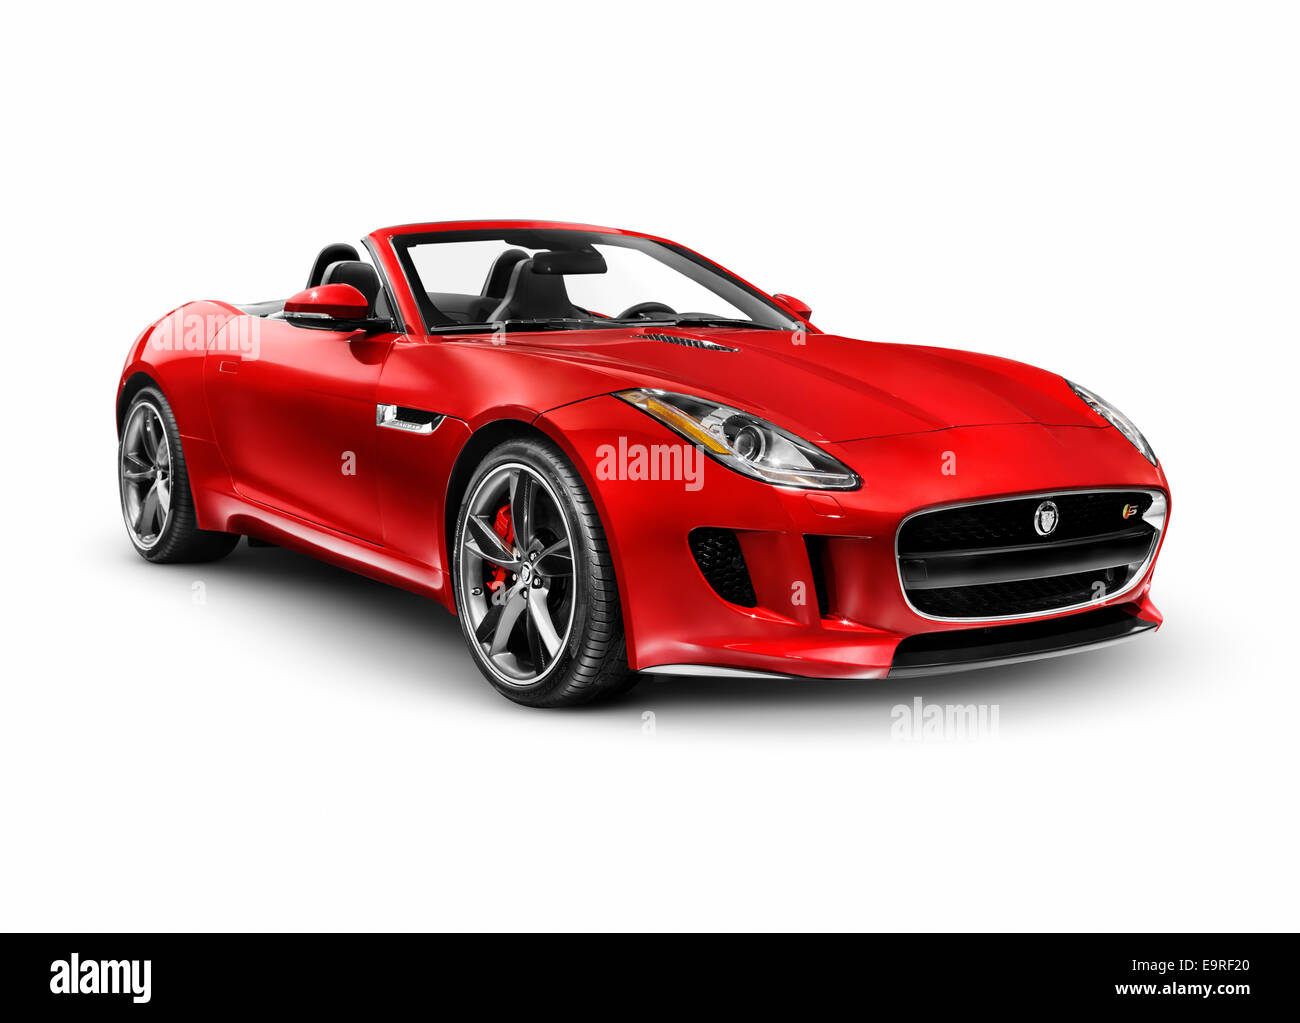 Red 2014 Jaguar F Type S Luxury Sports Car Isolated On White Stock